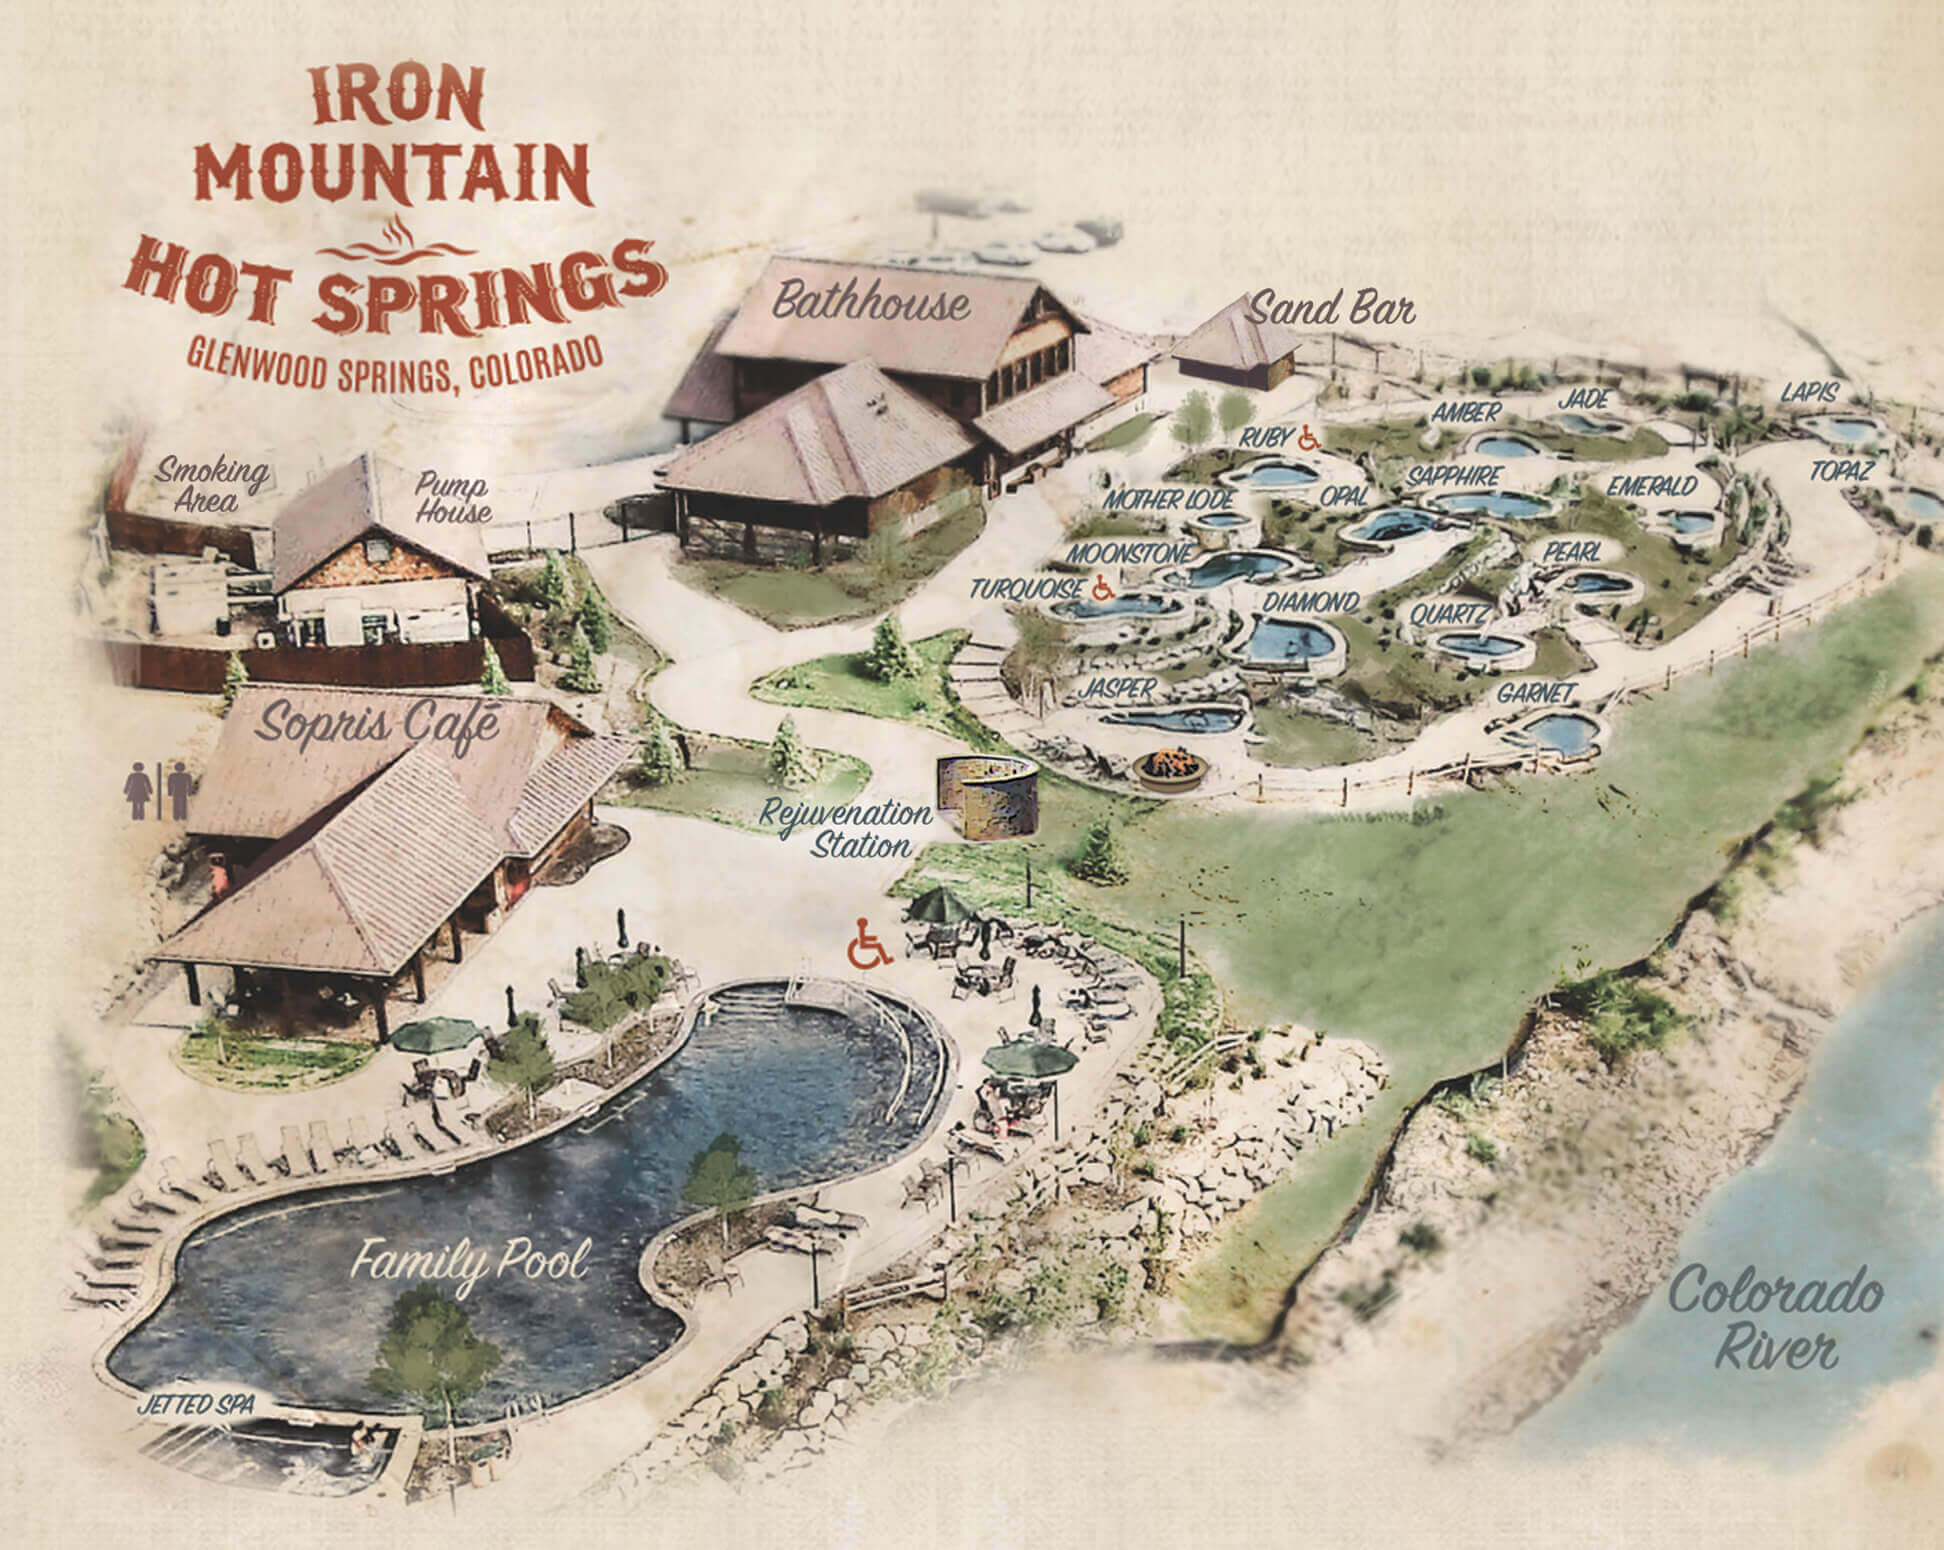 Iron Mountain Hot Springs pool map